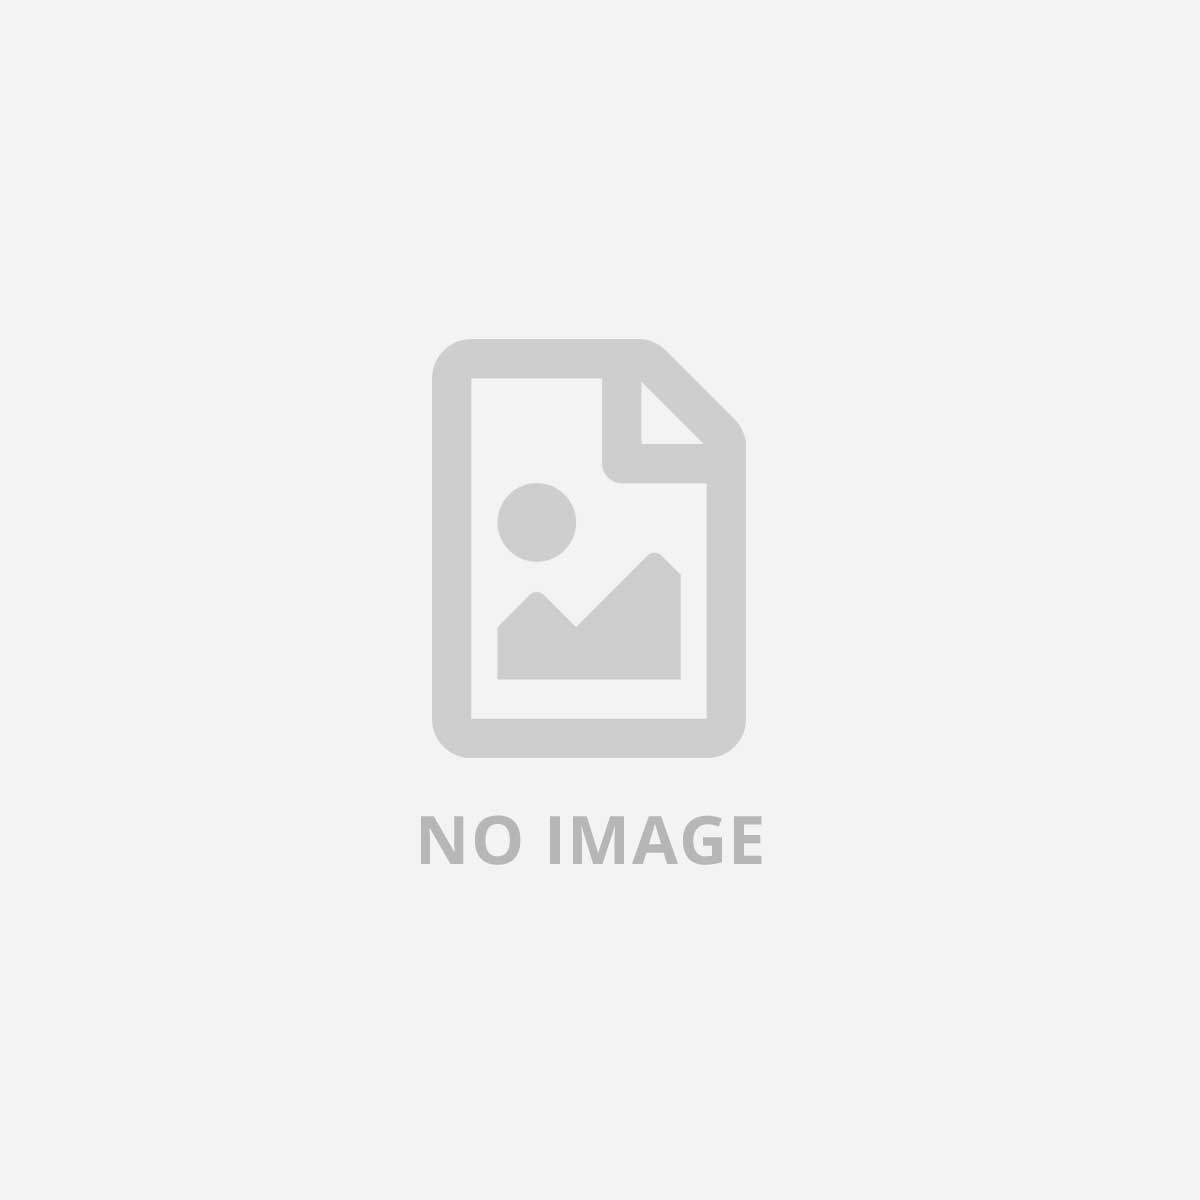 KENWOOD DASHCAM DRV-A501 TFT LCD FULL HD 3